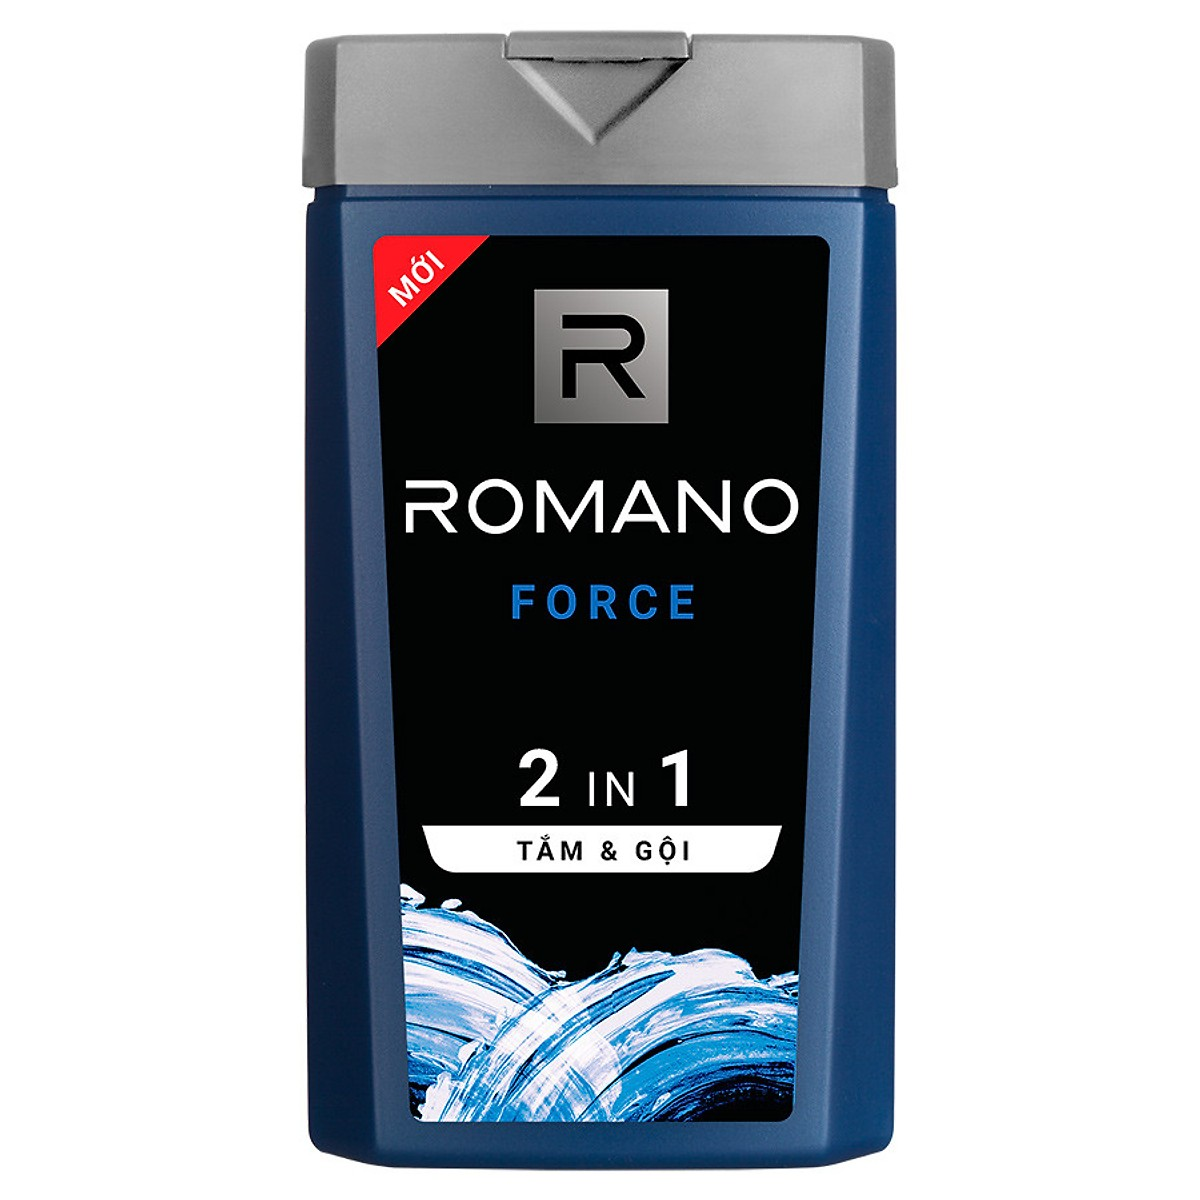 romano force 2in1